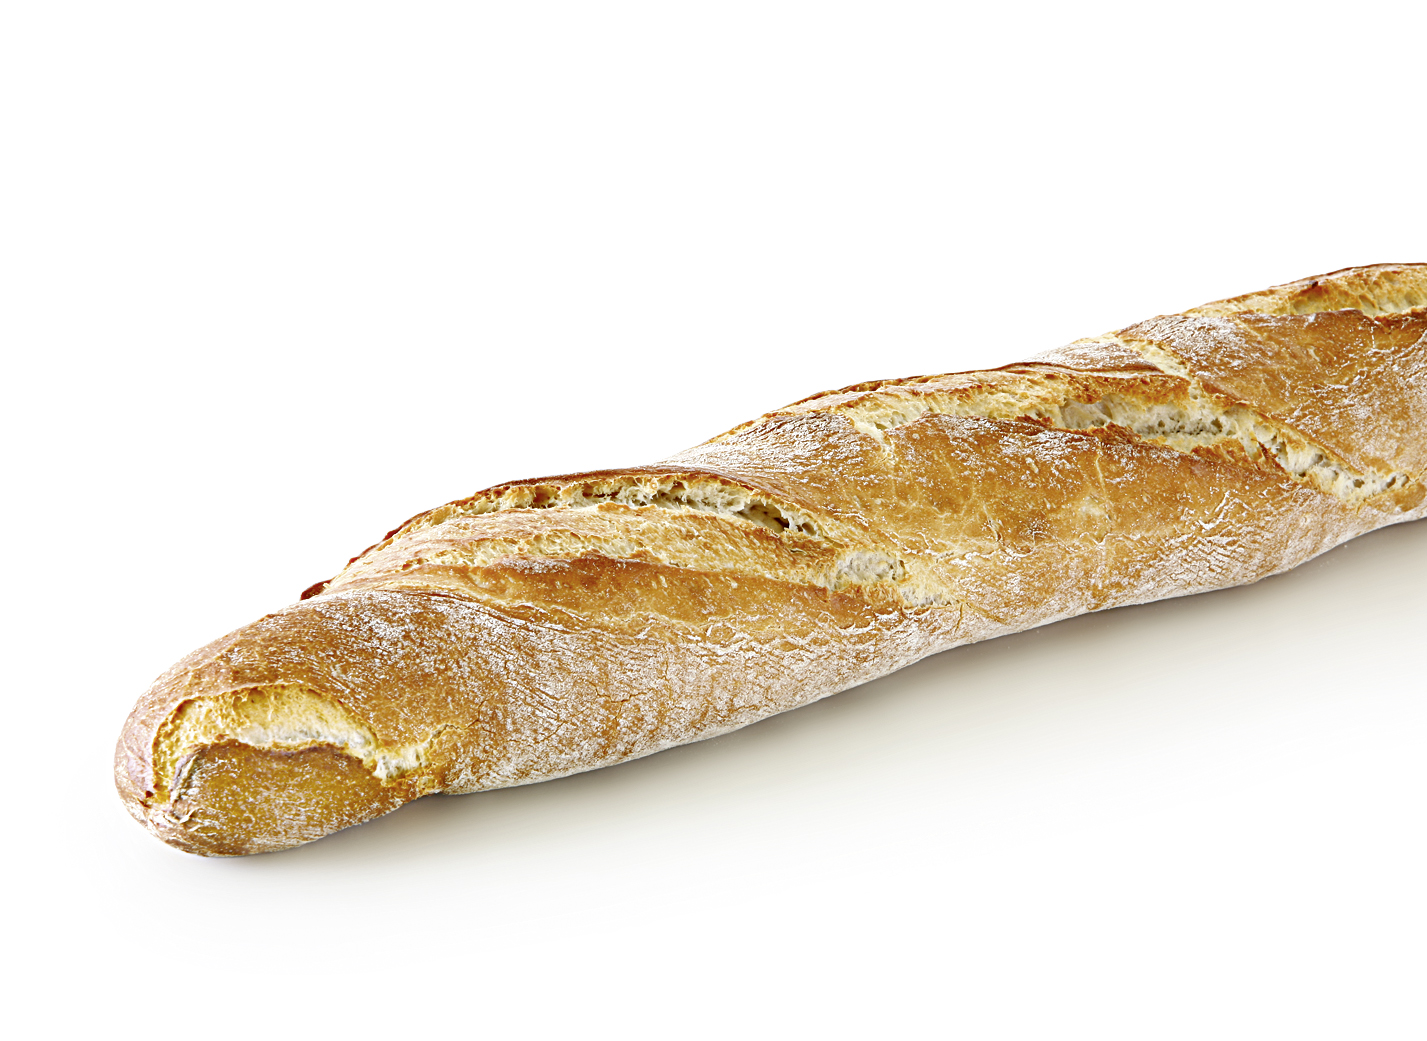 Pane Rustico - Rustic wheat bread with three diagonal cuts and pointed ends length: 54.5 cm